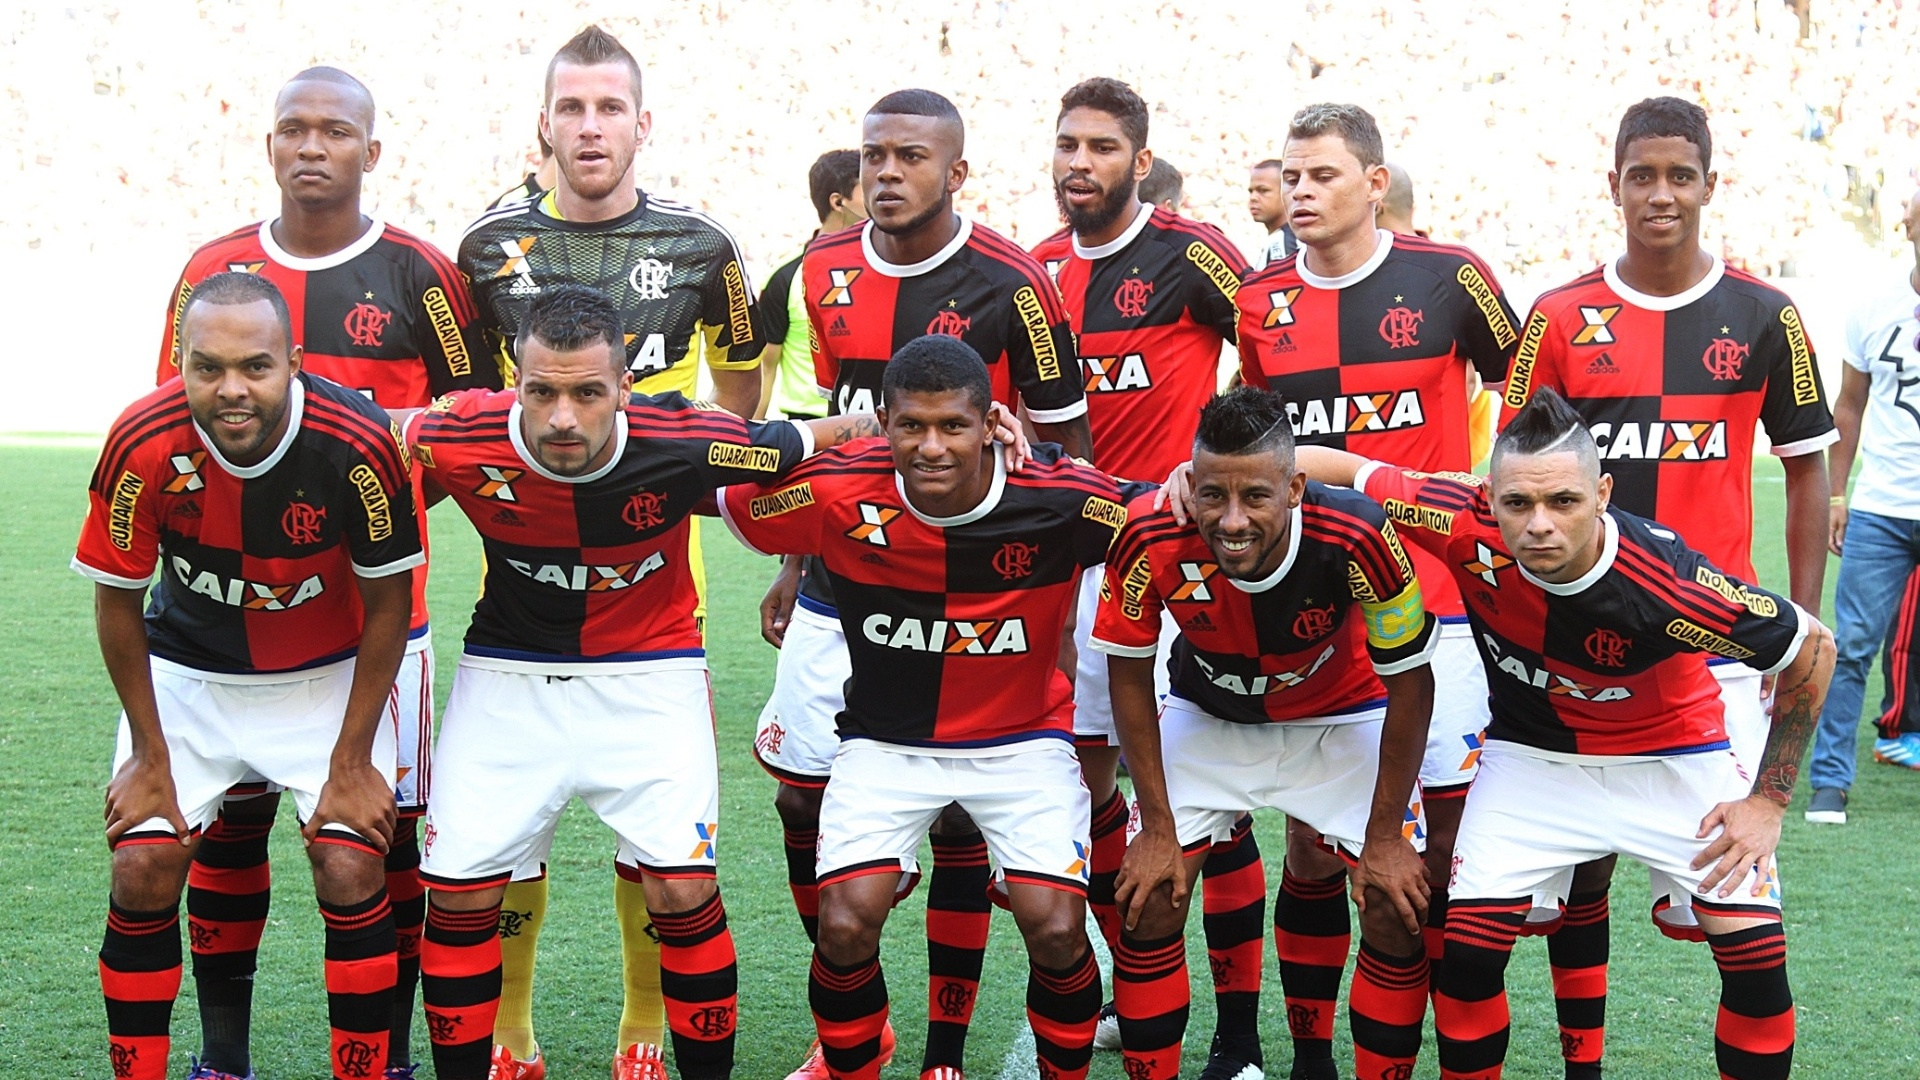 Elenco do Flamengo posa para fotos com a camisa